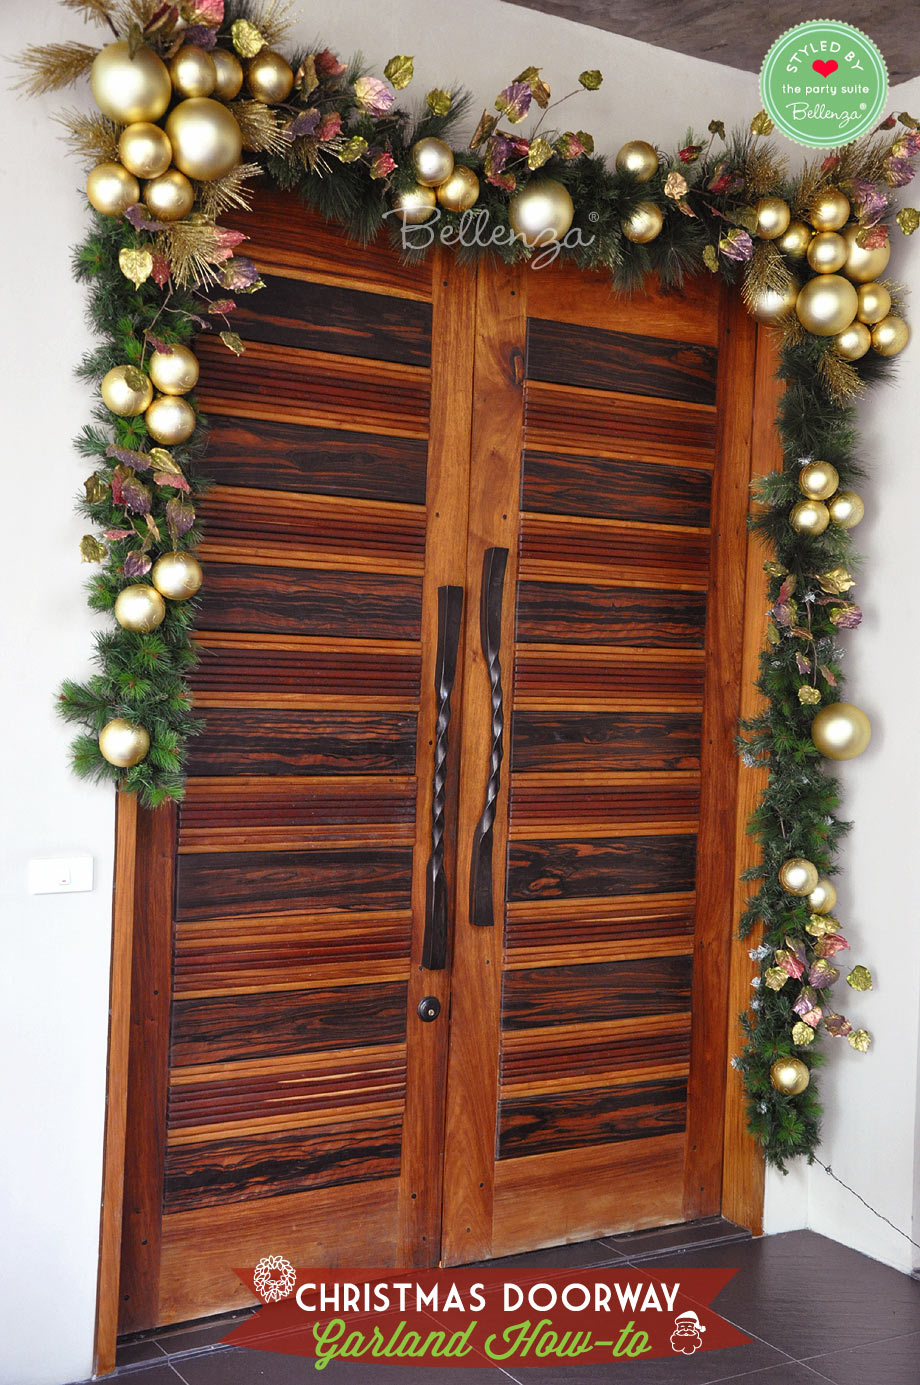 Finished door garland // DIY Christmas door garland by Bellenza.